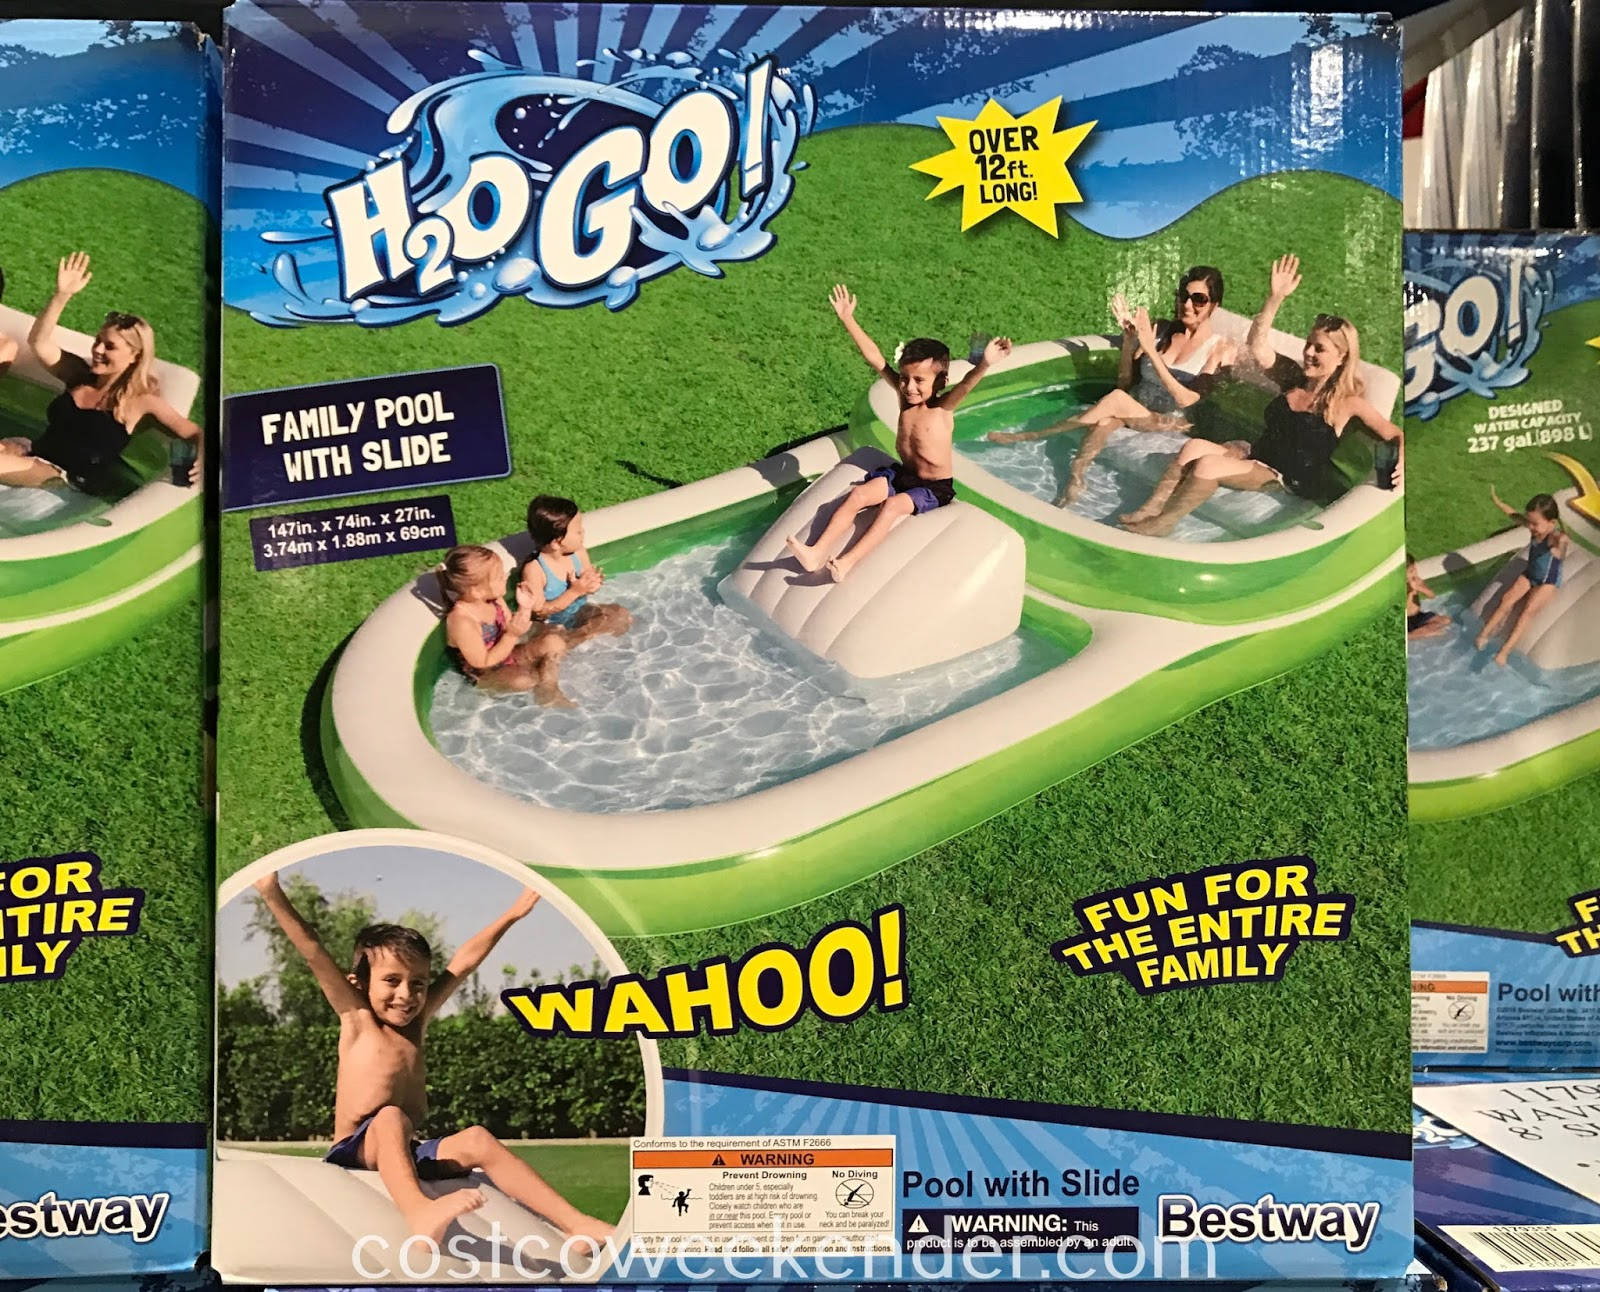 Have your kids cool off this summer with the Bestway Family Pool with Slide